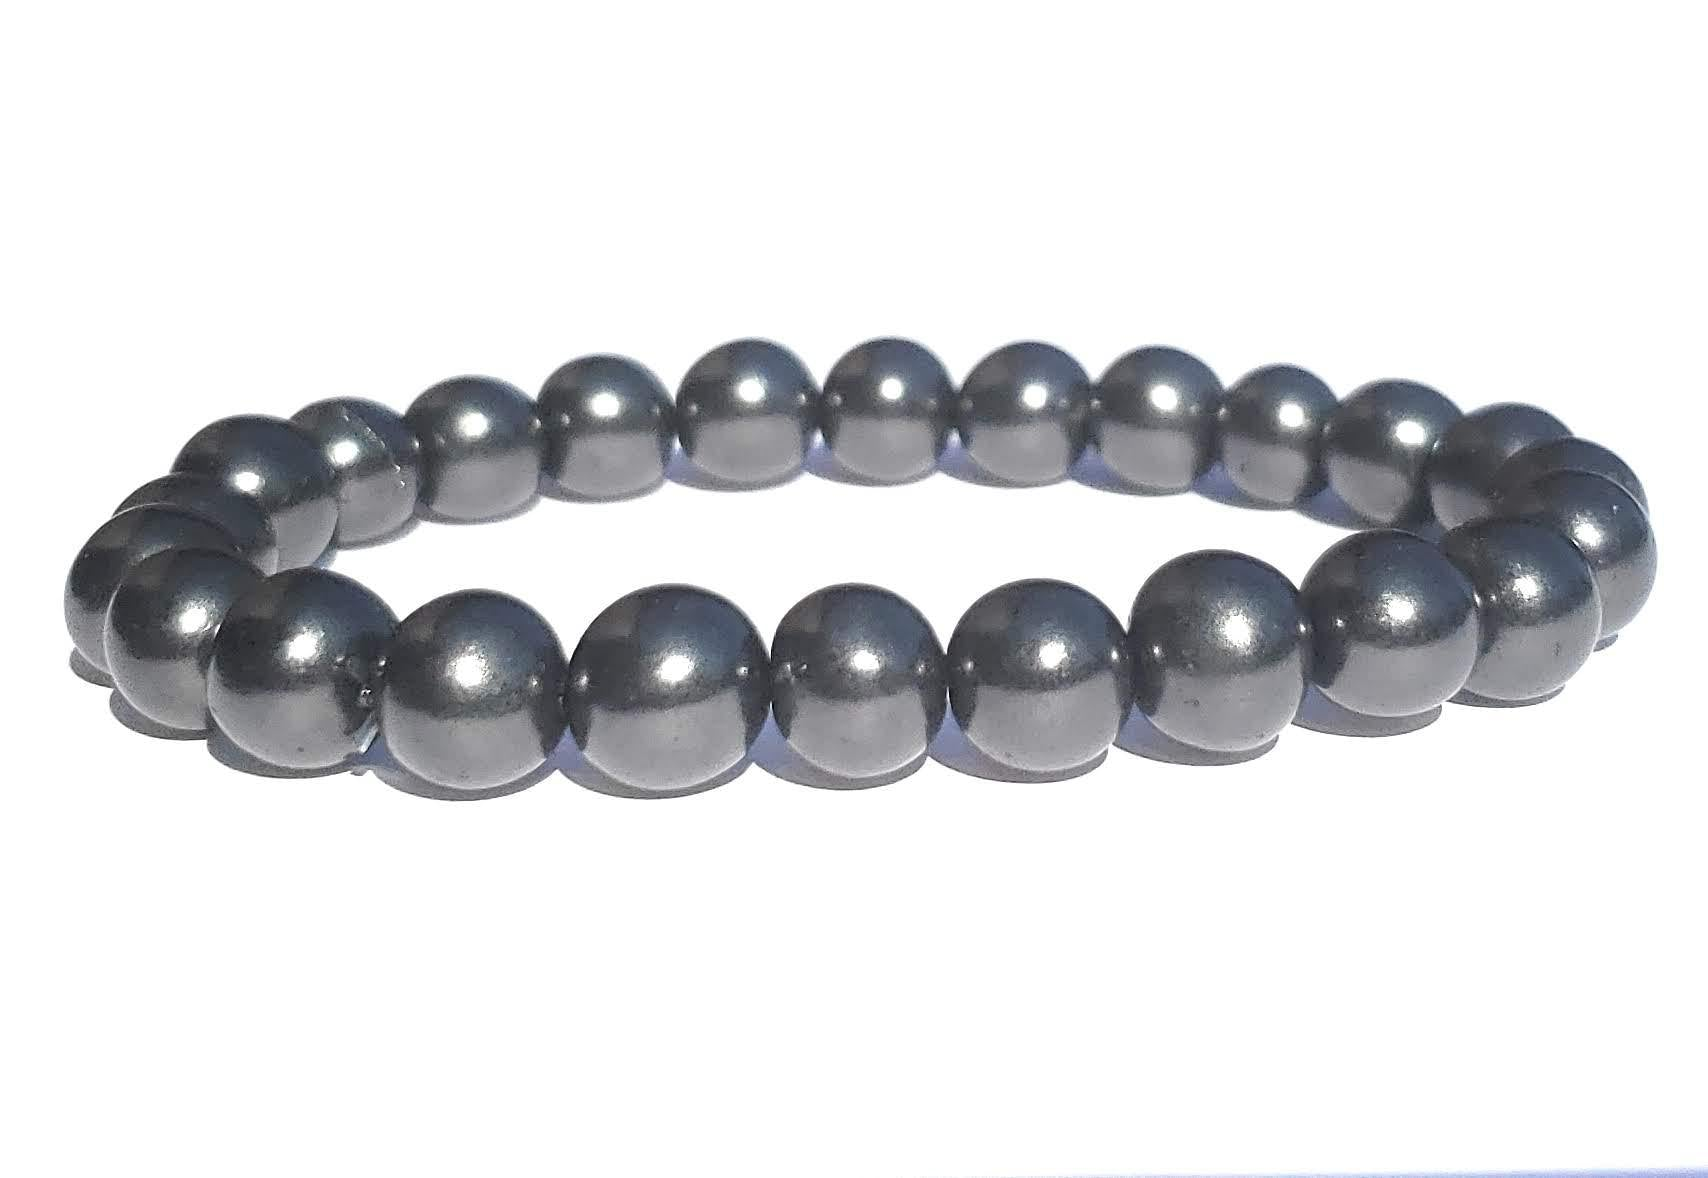 Shungite Bracelet - 8mm Beads, Adult - Karelia Creations